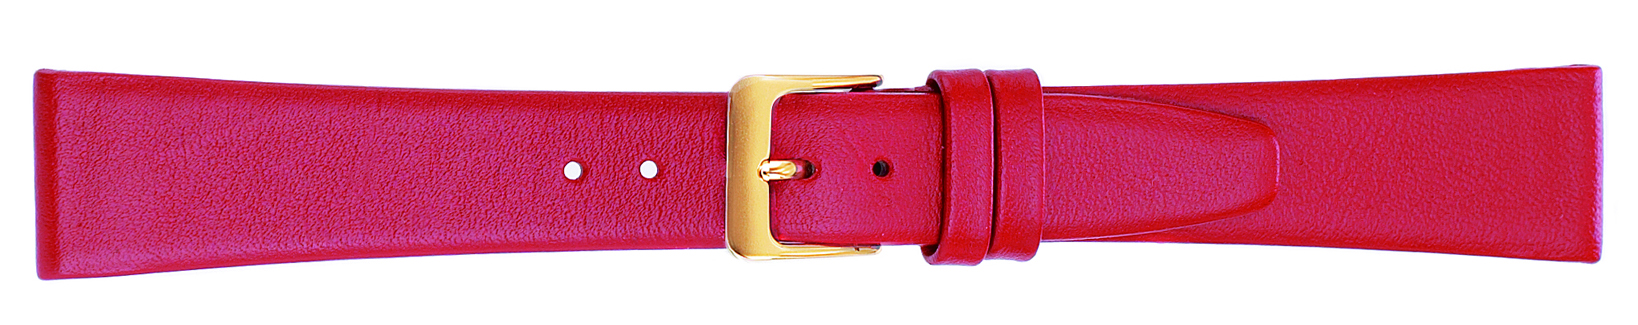 14MM Leather Band Red Smooth Calf-0